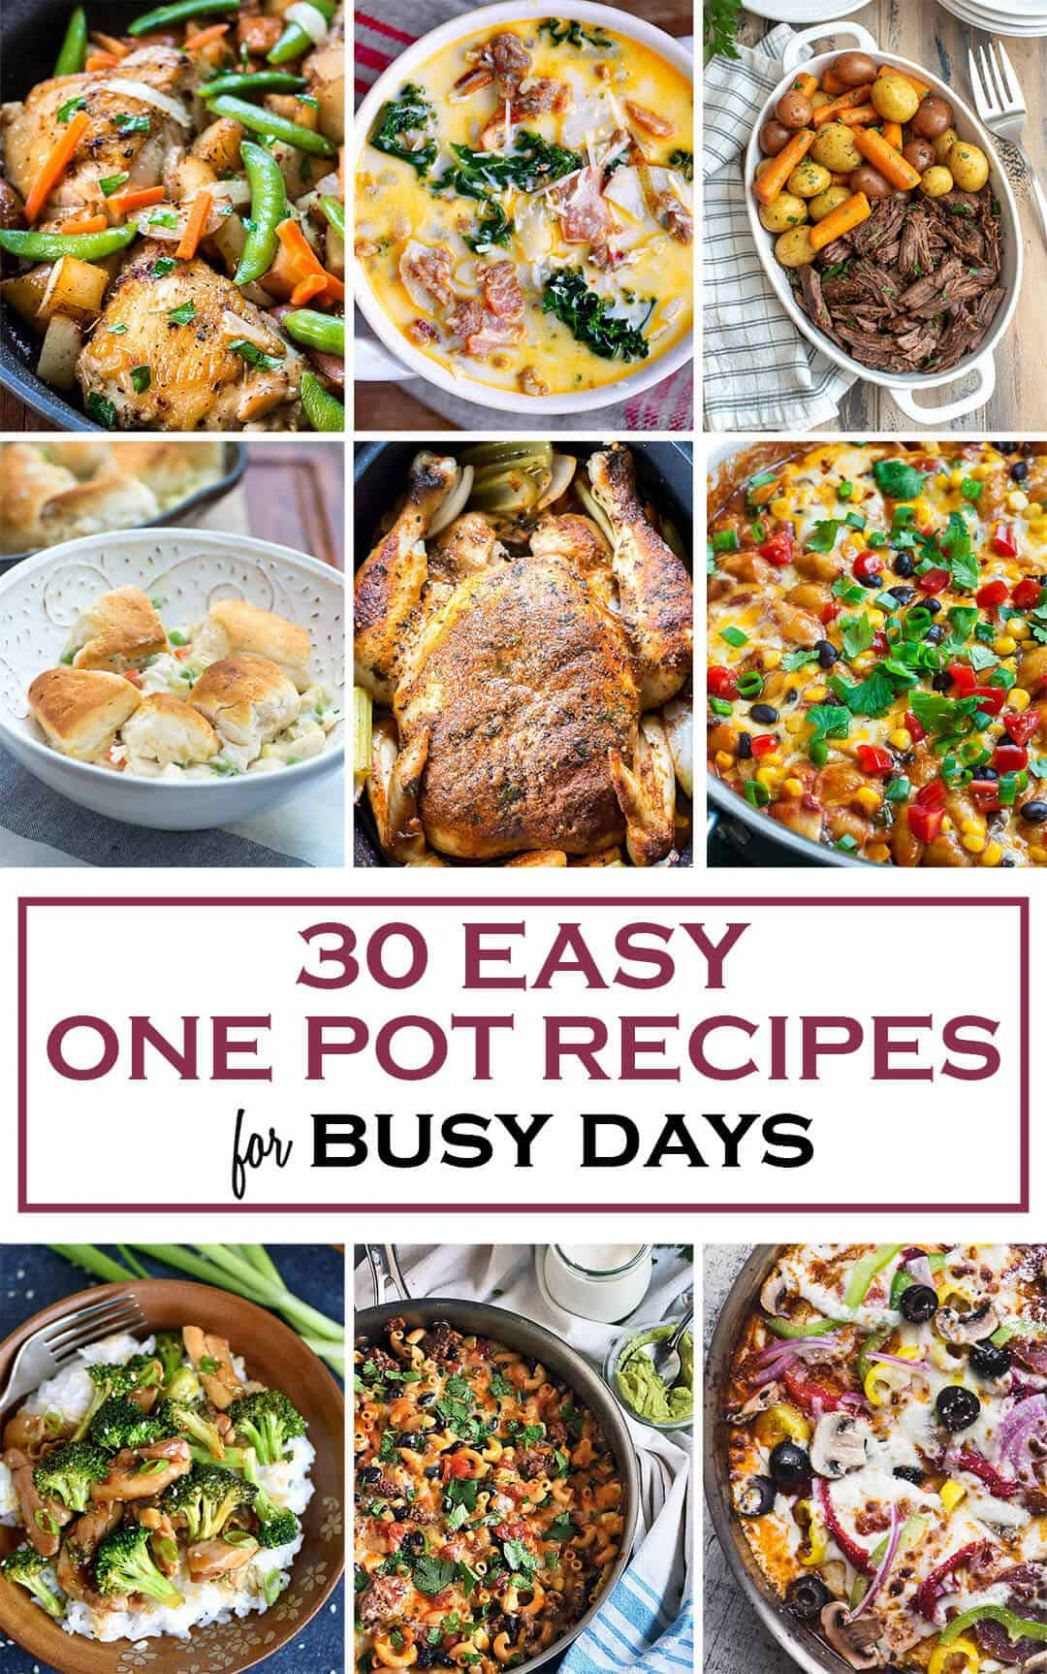 12 Easy One Pot Recipes for Busy Days | Valerie's Kitchen